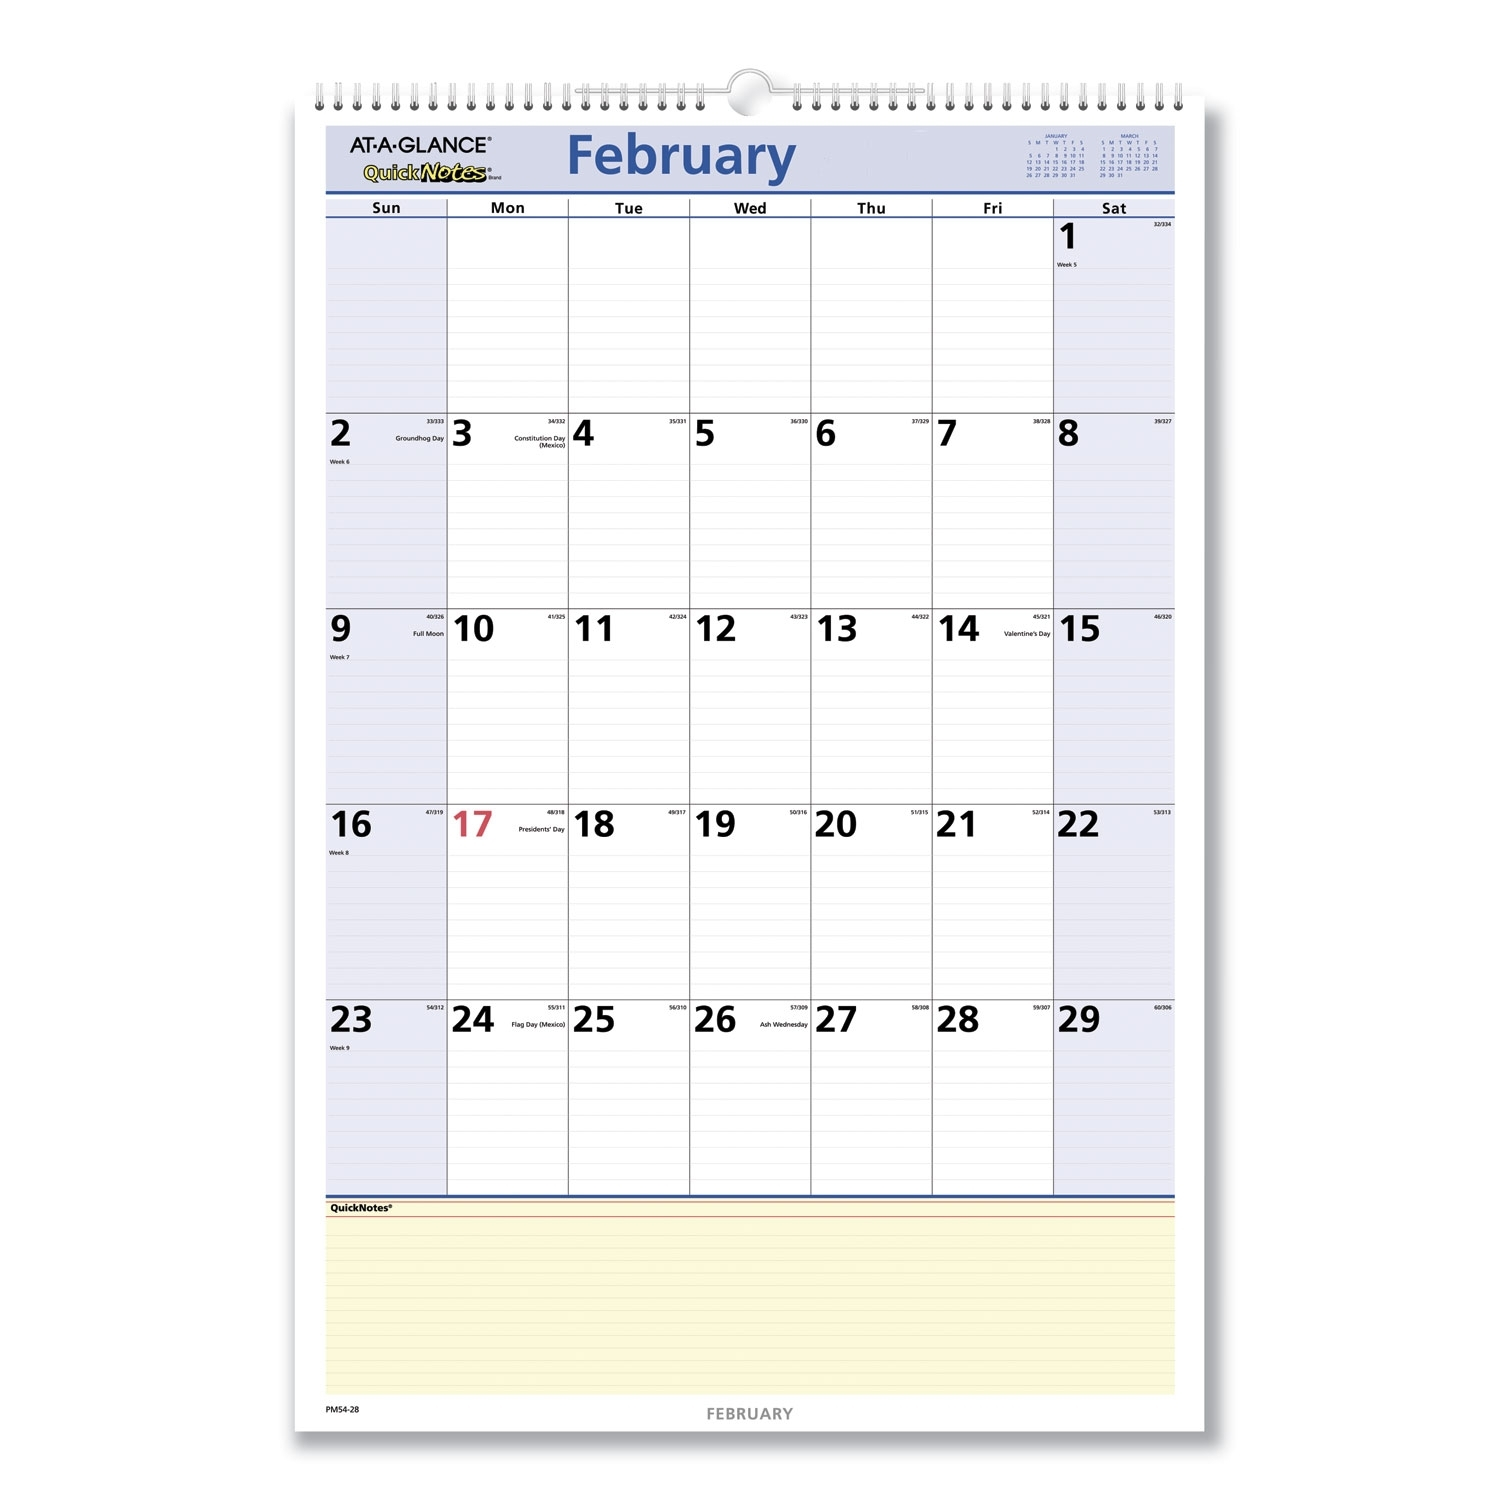 At-A-Glance Quicknotes Wall Calendar, 15.5 X 22.75, 2021 Pm54-28 | Office And Crafts